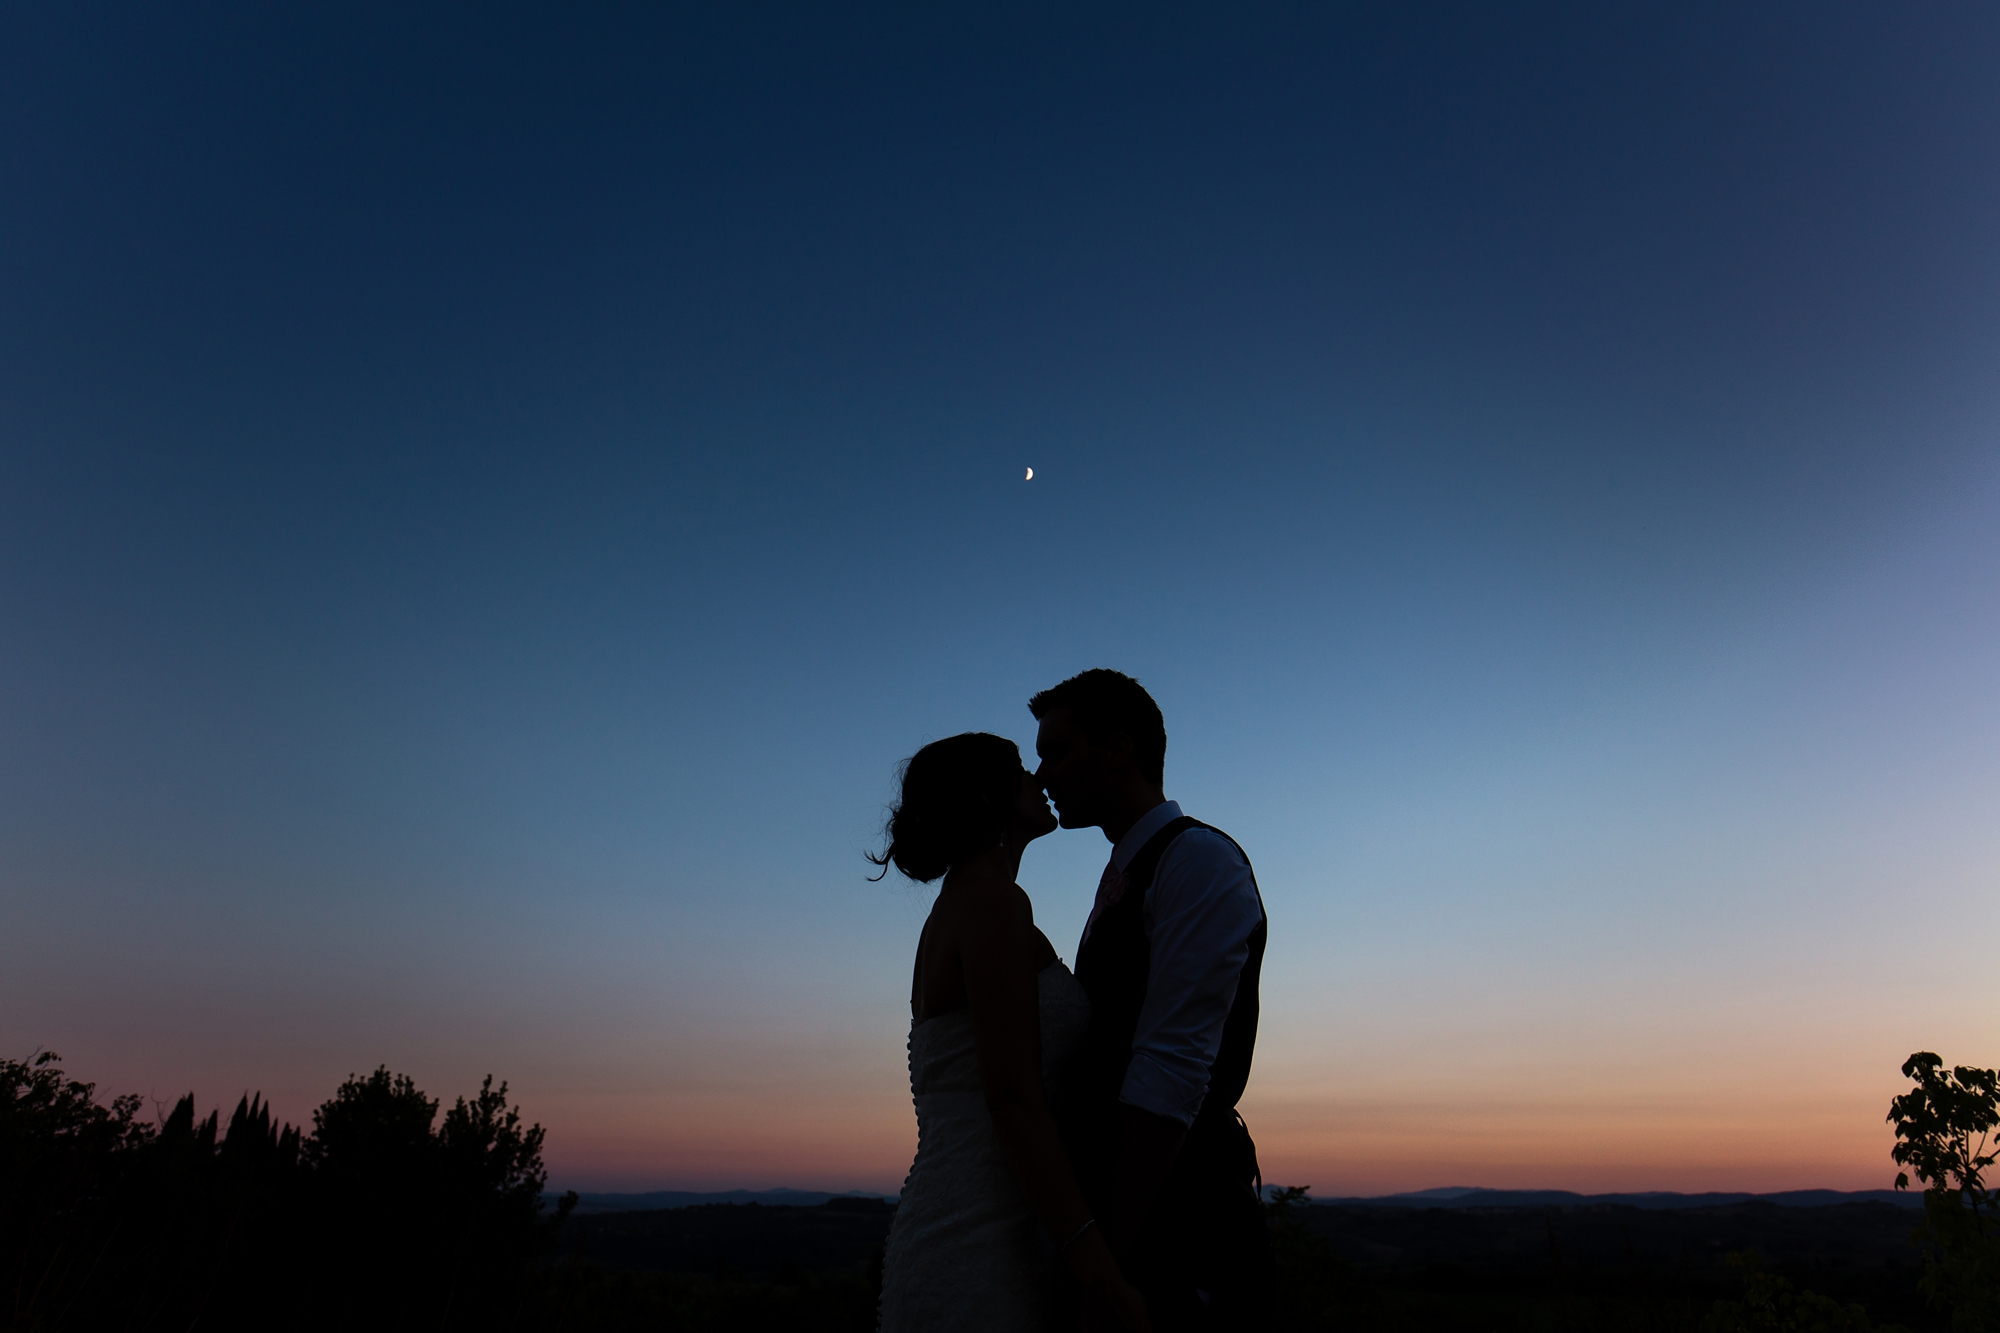 Moonlight silhouette best york wedding photography